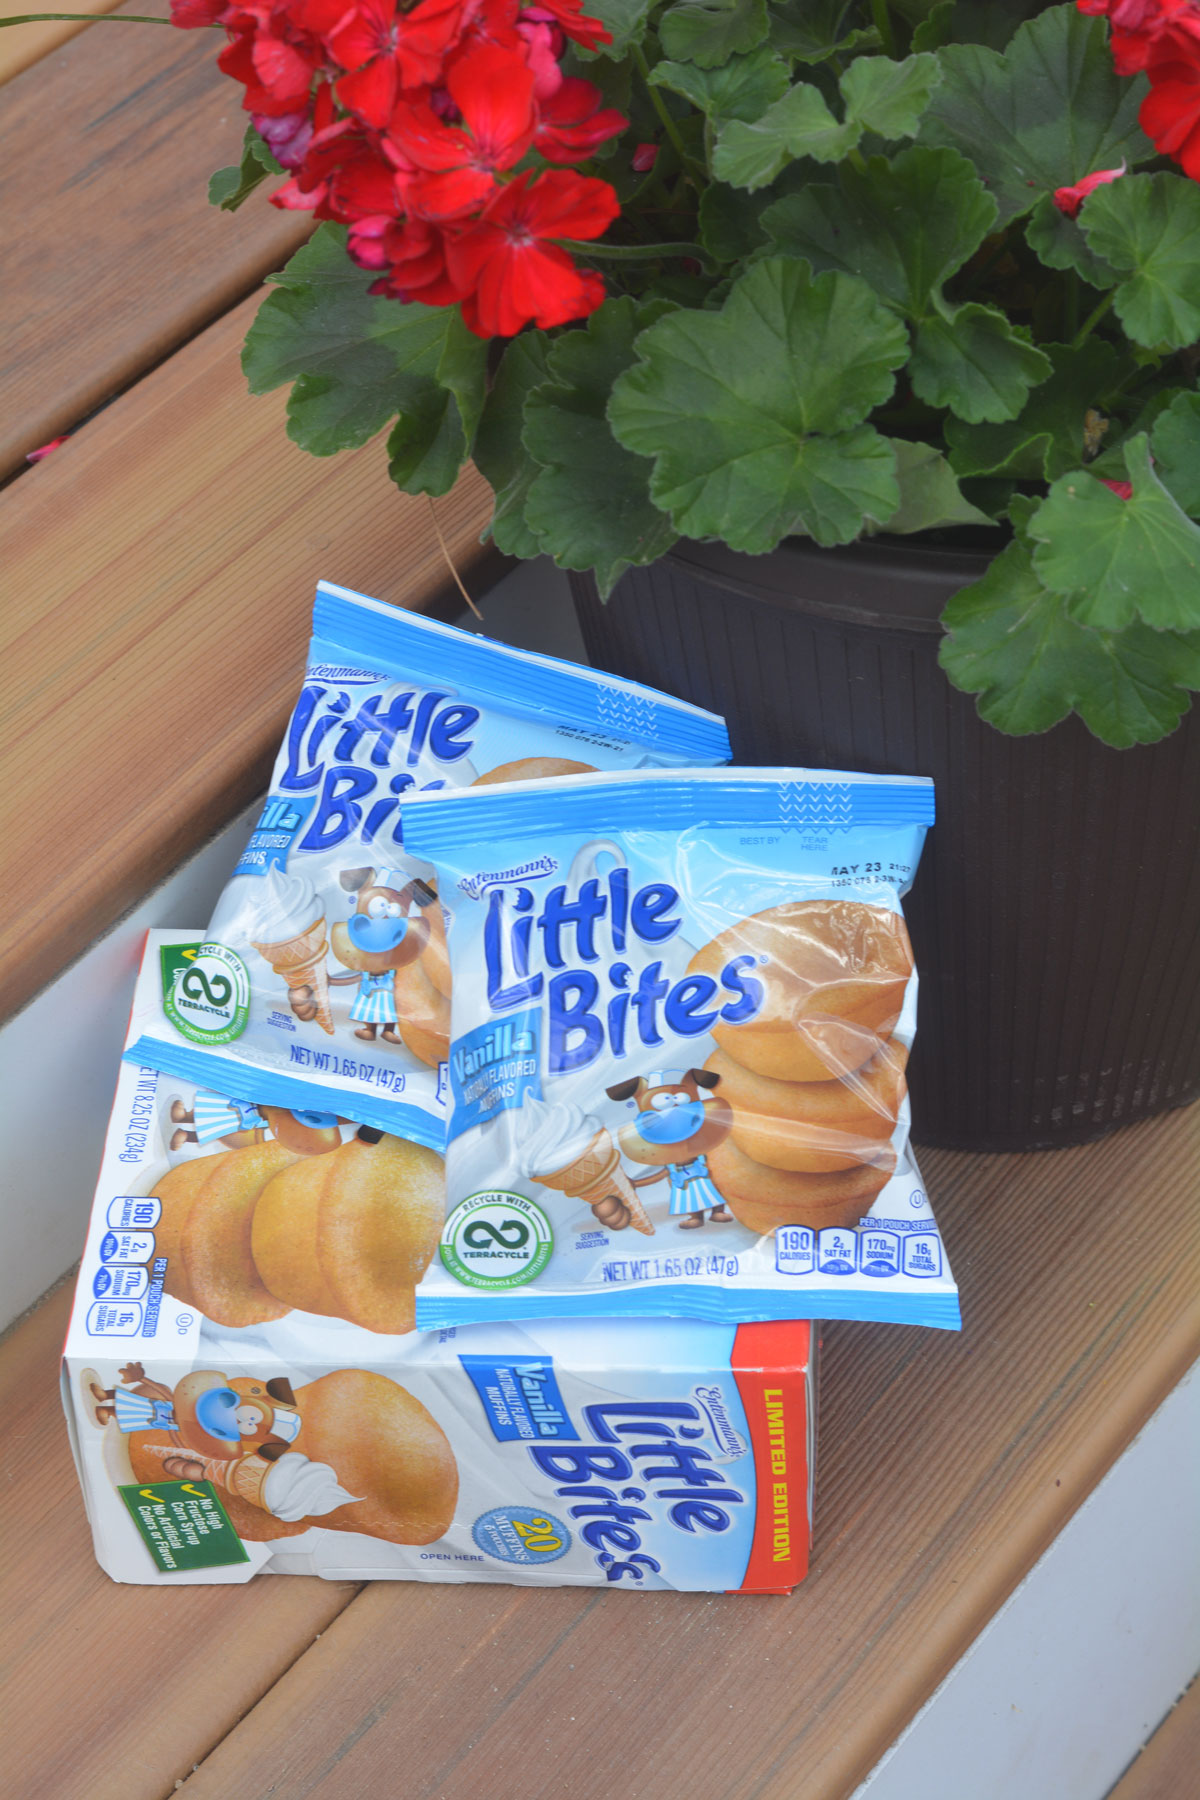 Box of Little Bites Vanilla muffins and individual packages